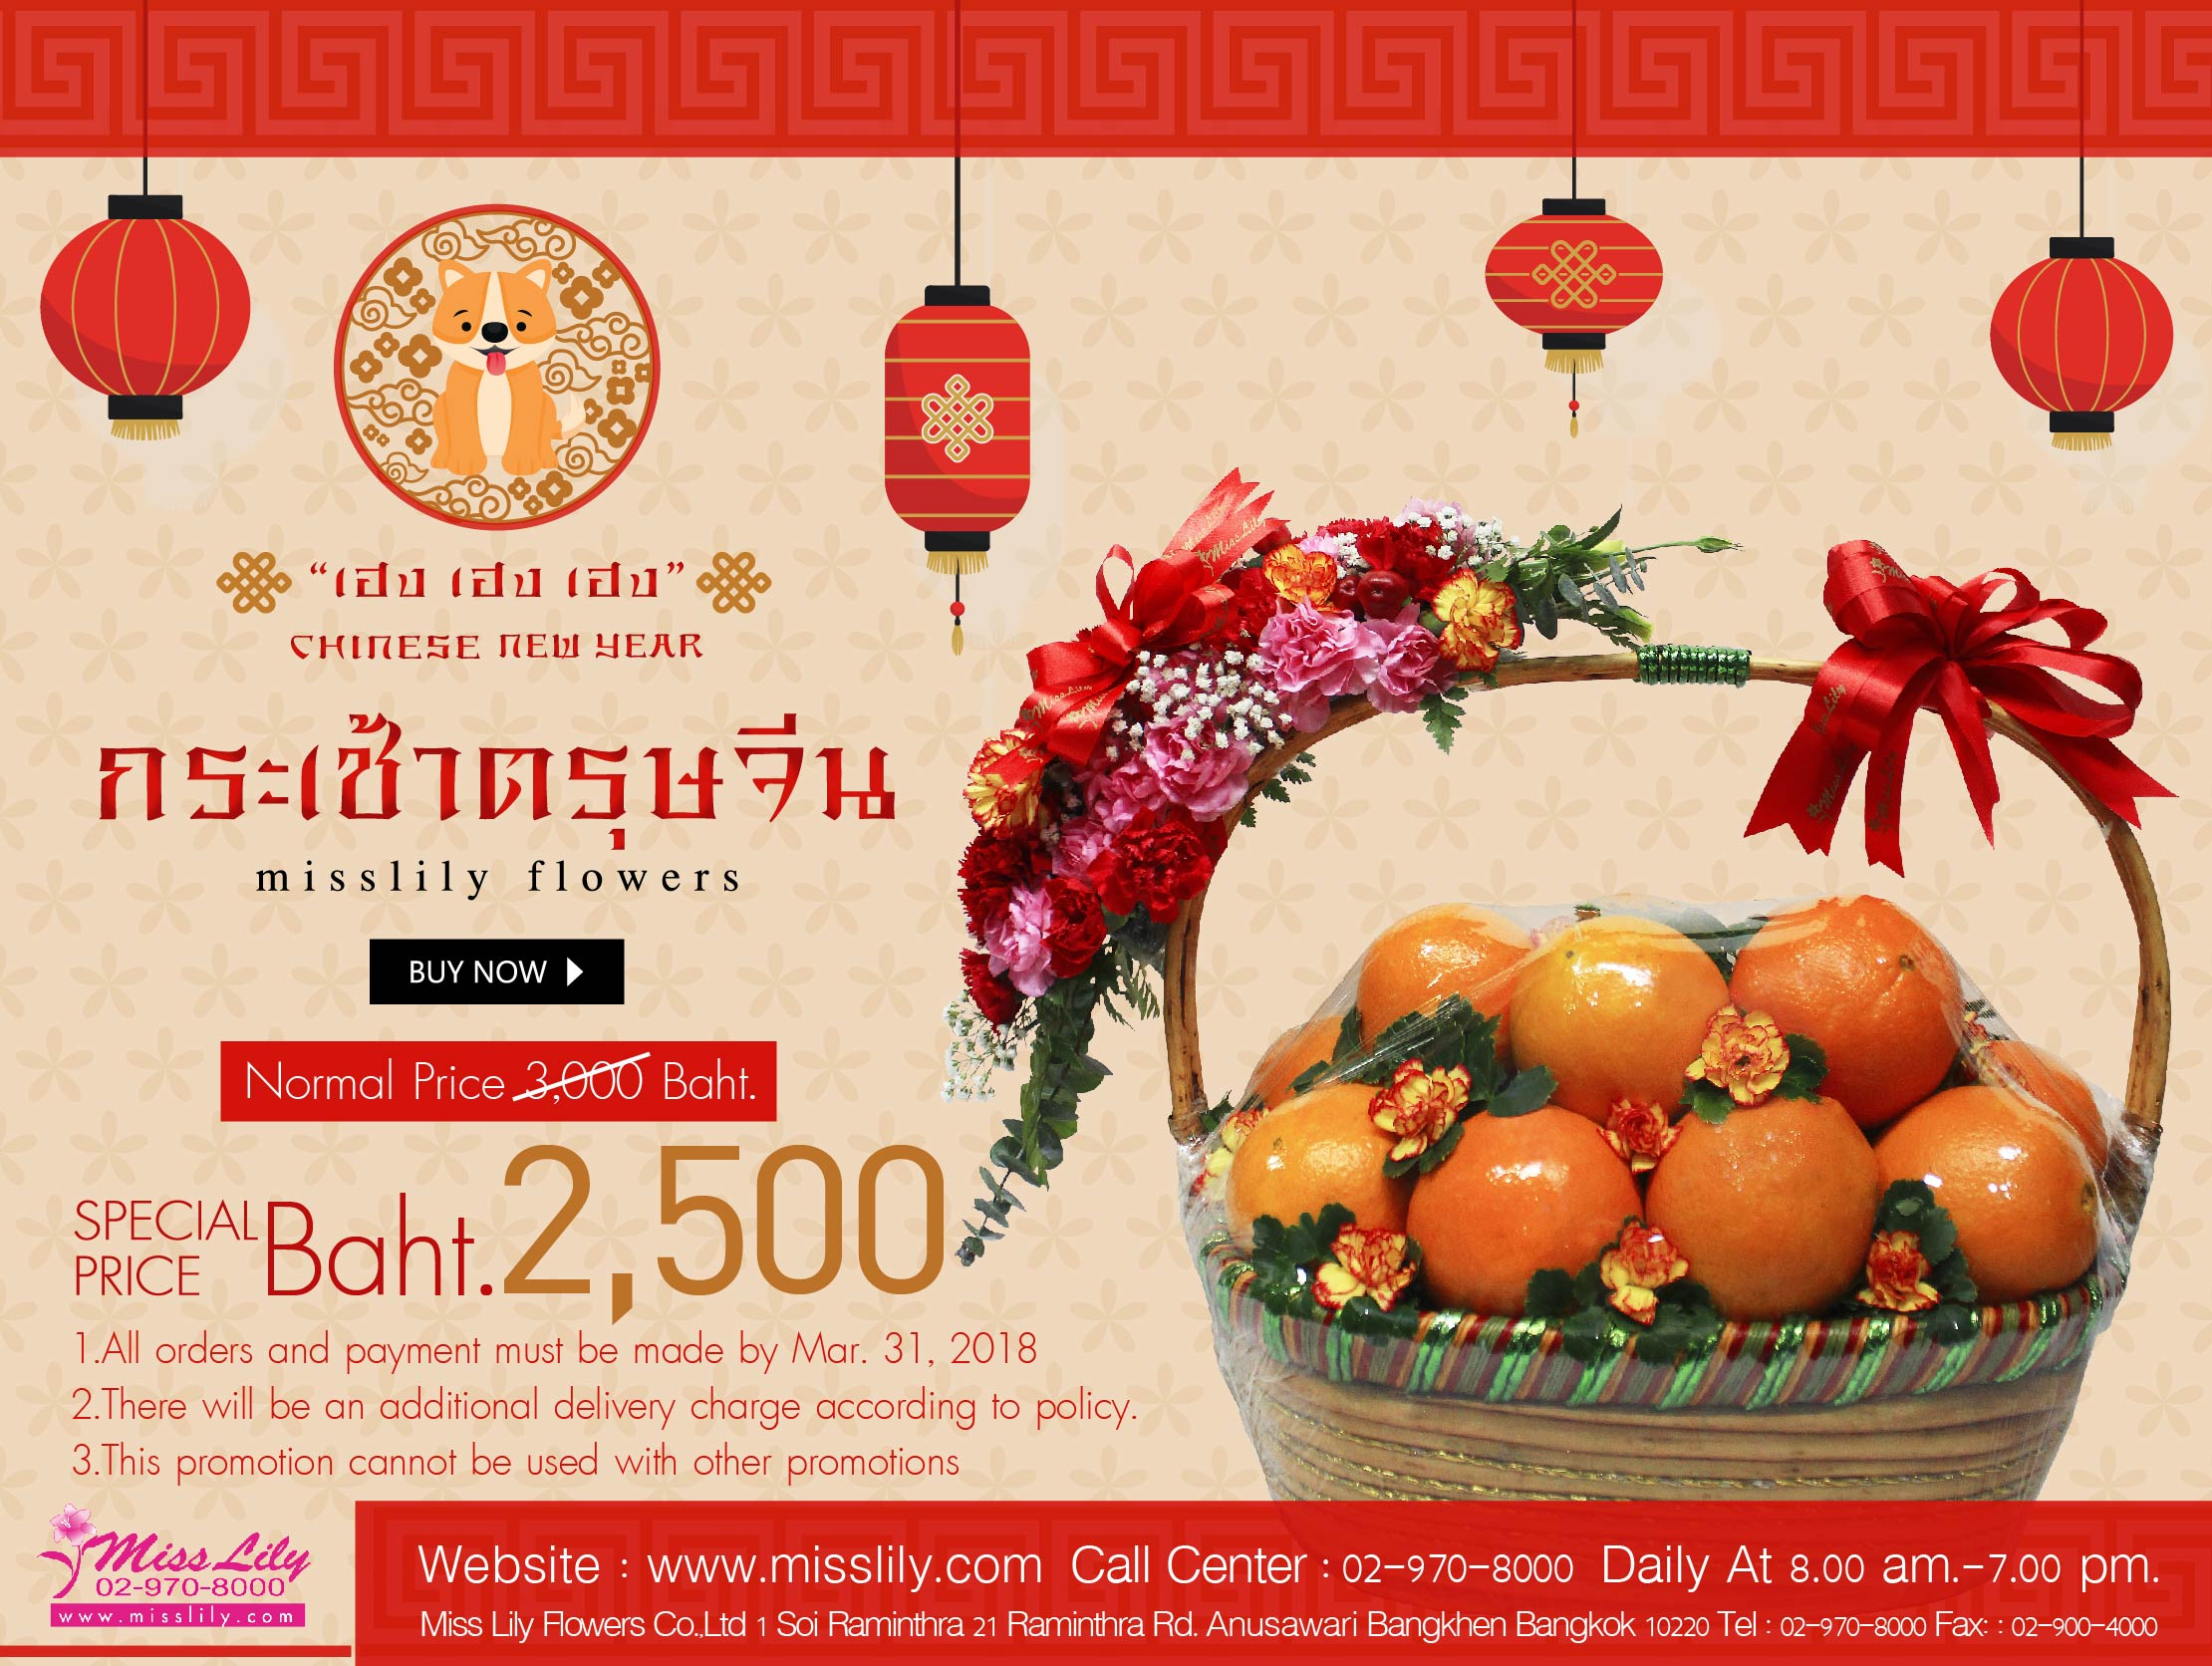 Chinese new year 2018 miss lily flowers thailand flower delivery 0 miss lily flowers izmirmasajfo